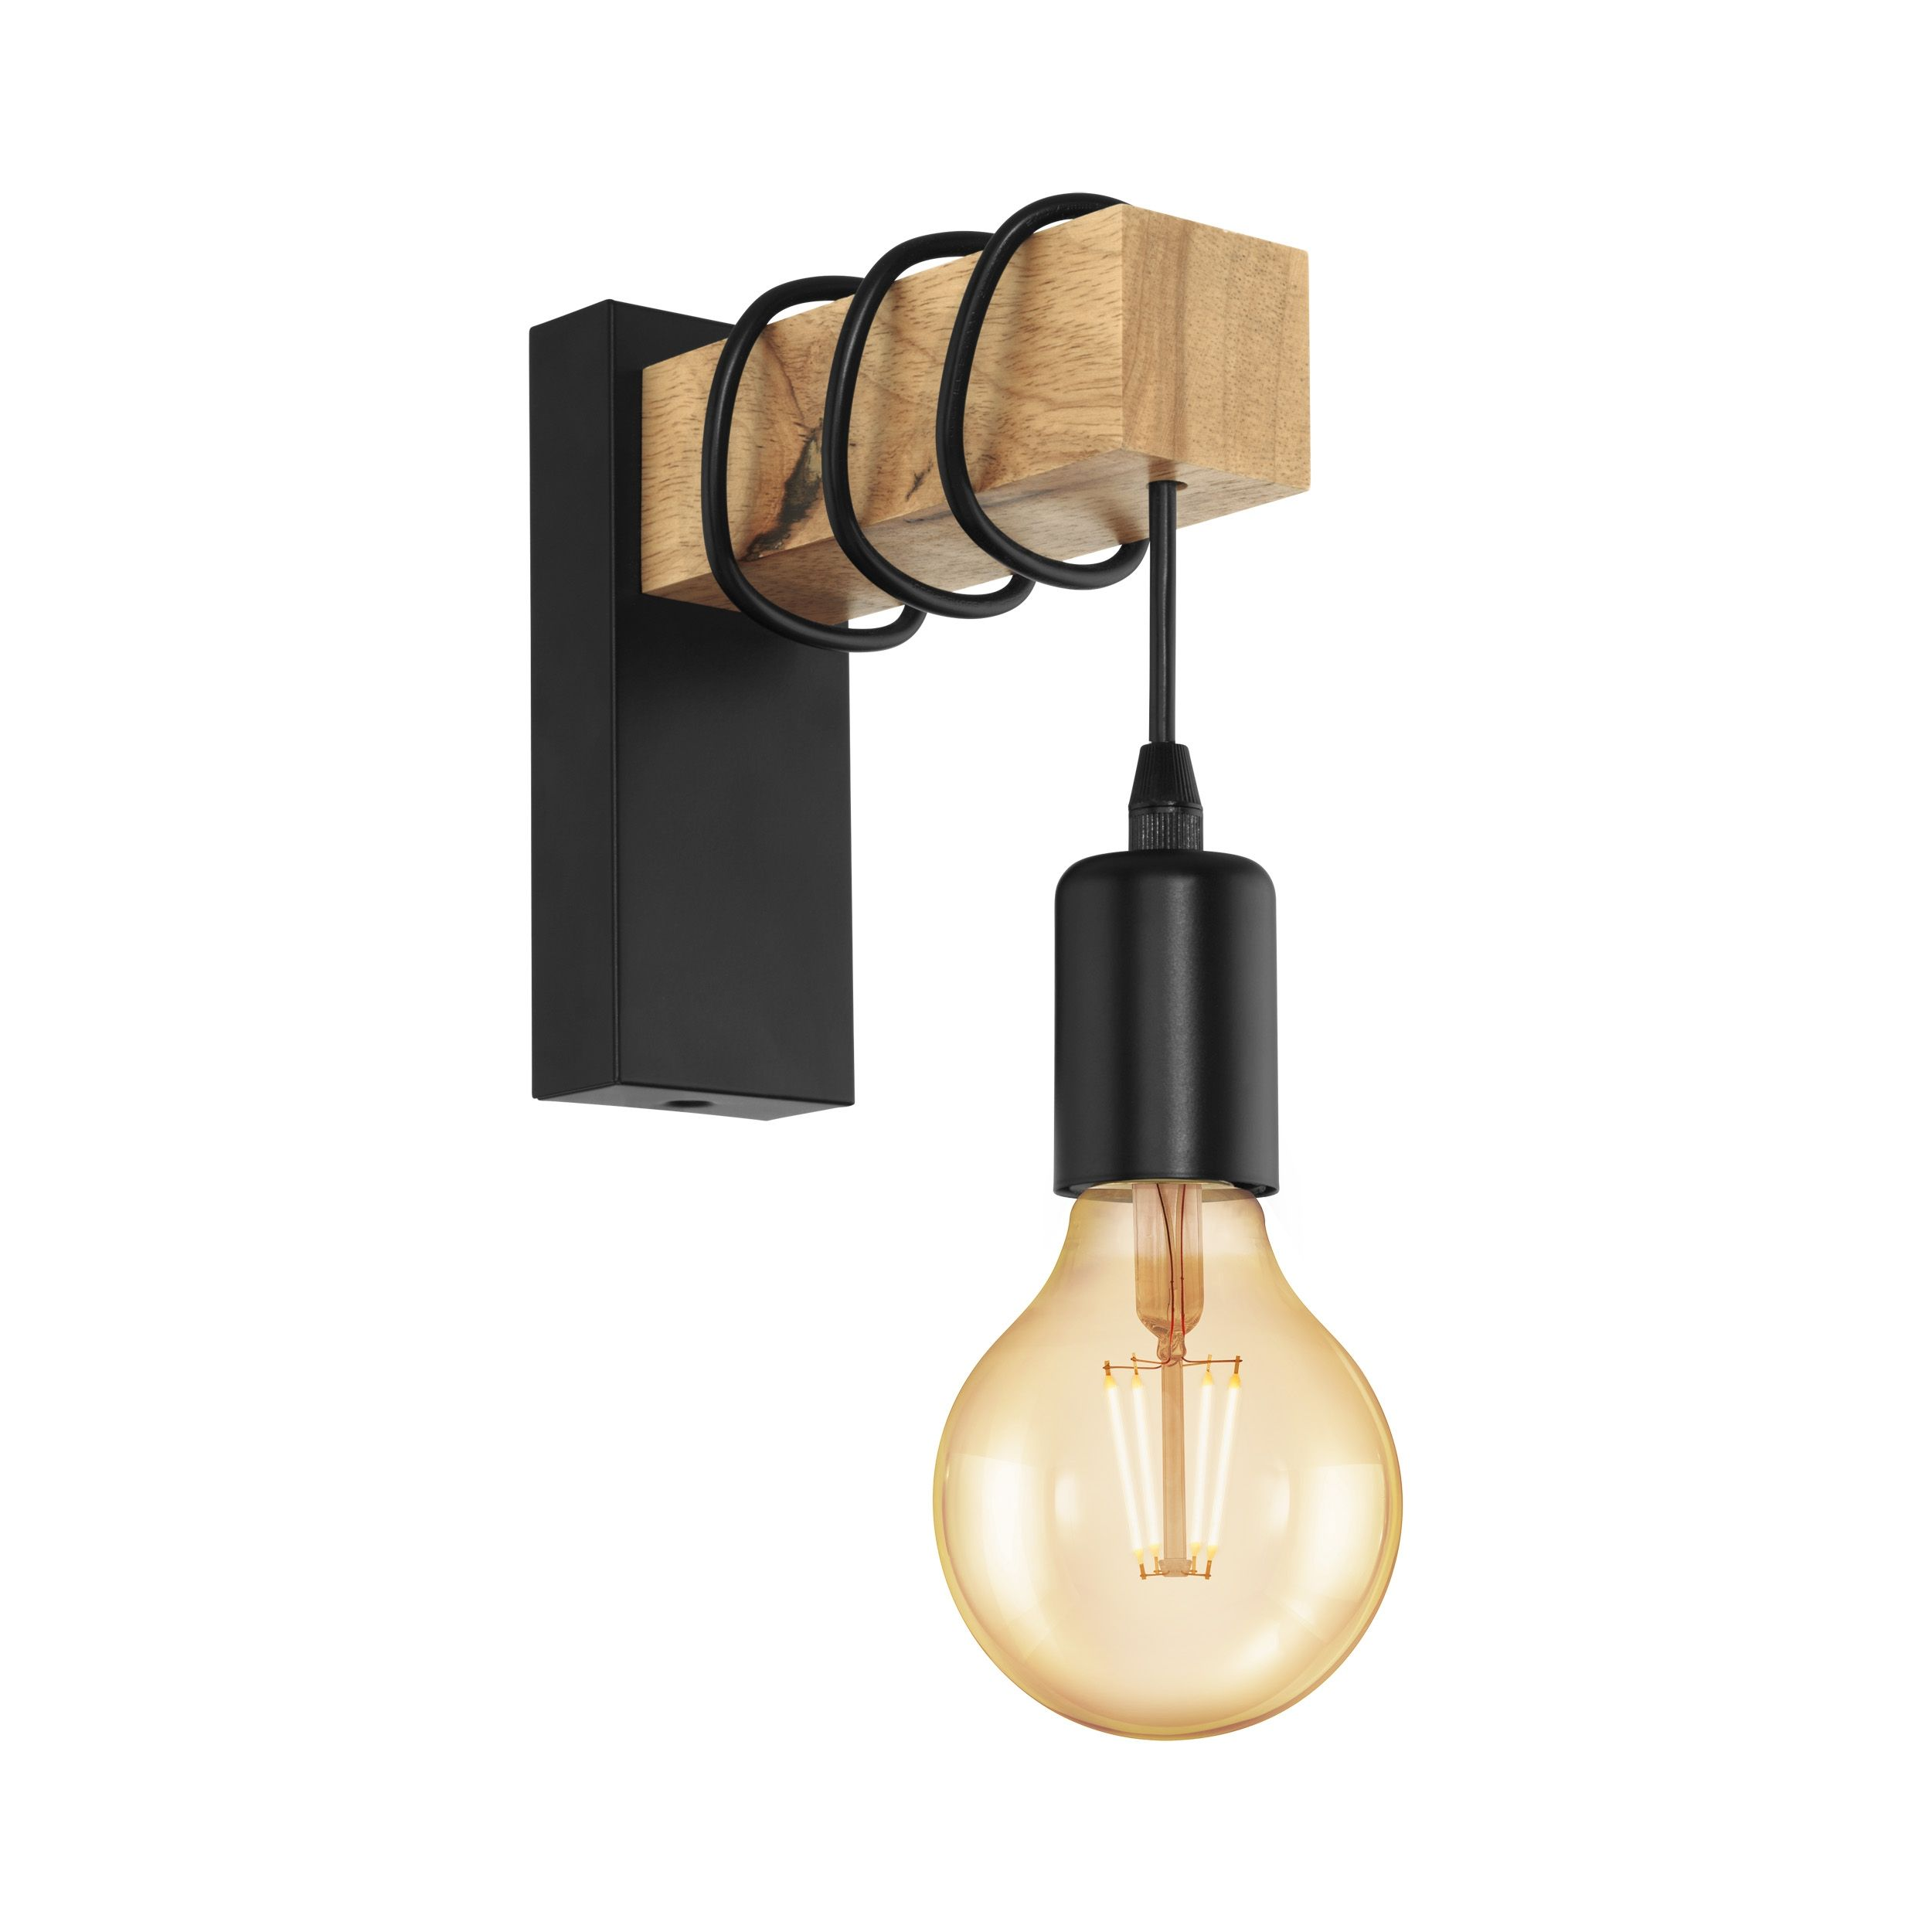 Eglo Townshend Wooden Wall Light In 2020 Wooden Wall Lights Industrial Wall Lights Bracket Wall Light